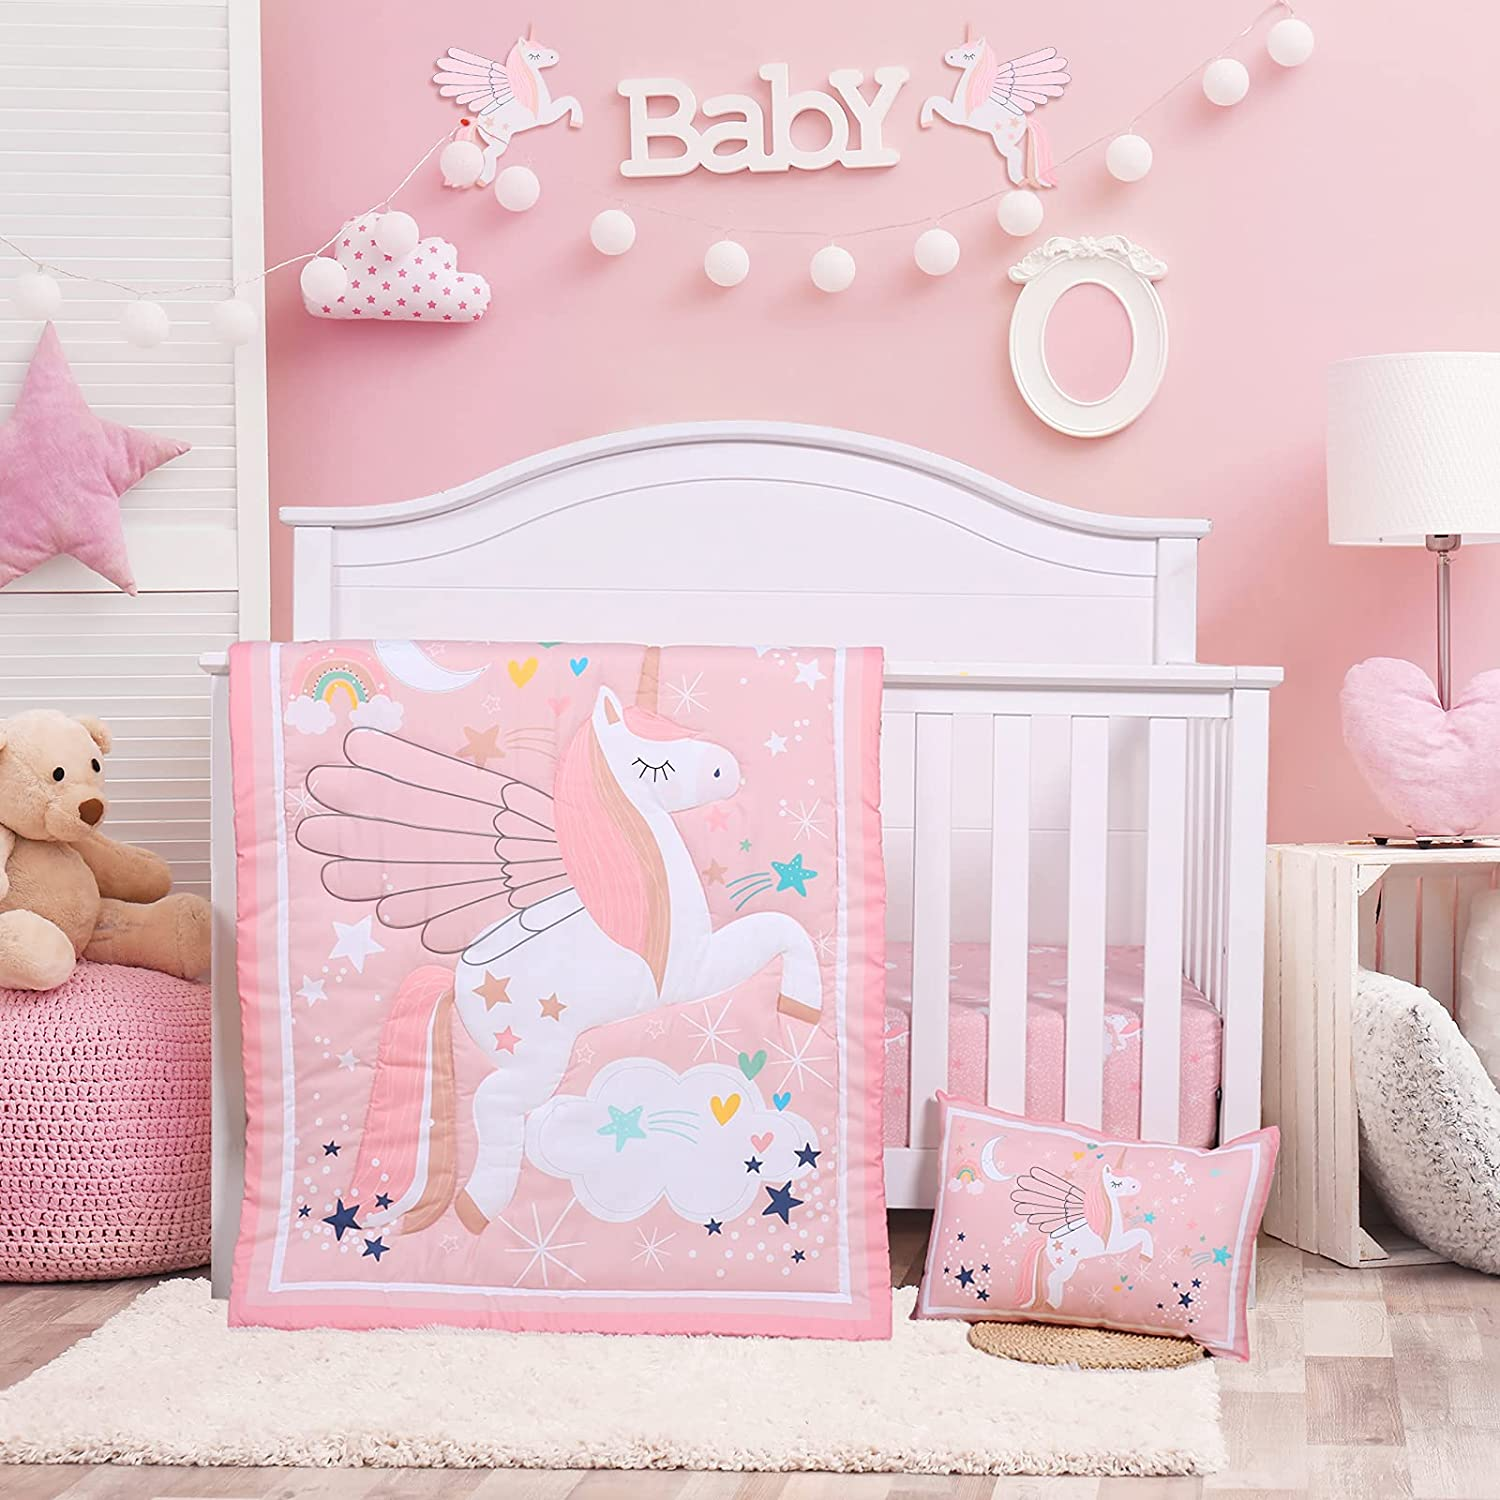 Crib Ranking TOP8 Bedding Set for Girls - Pink Sets Nursery Online limited product 3 Baby